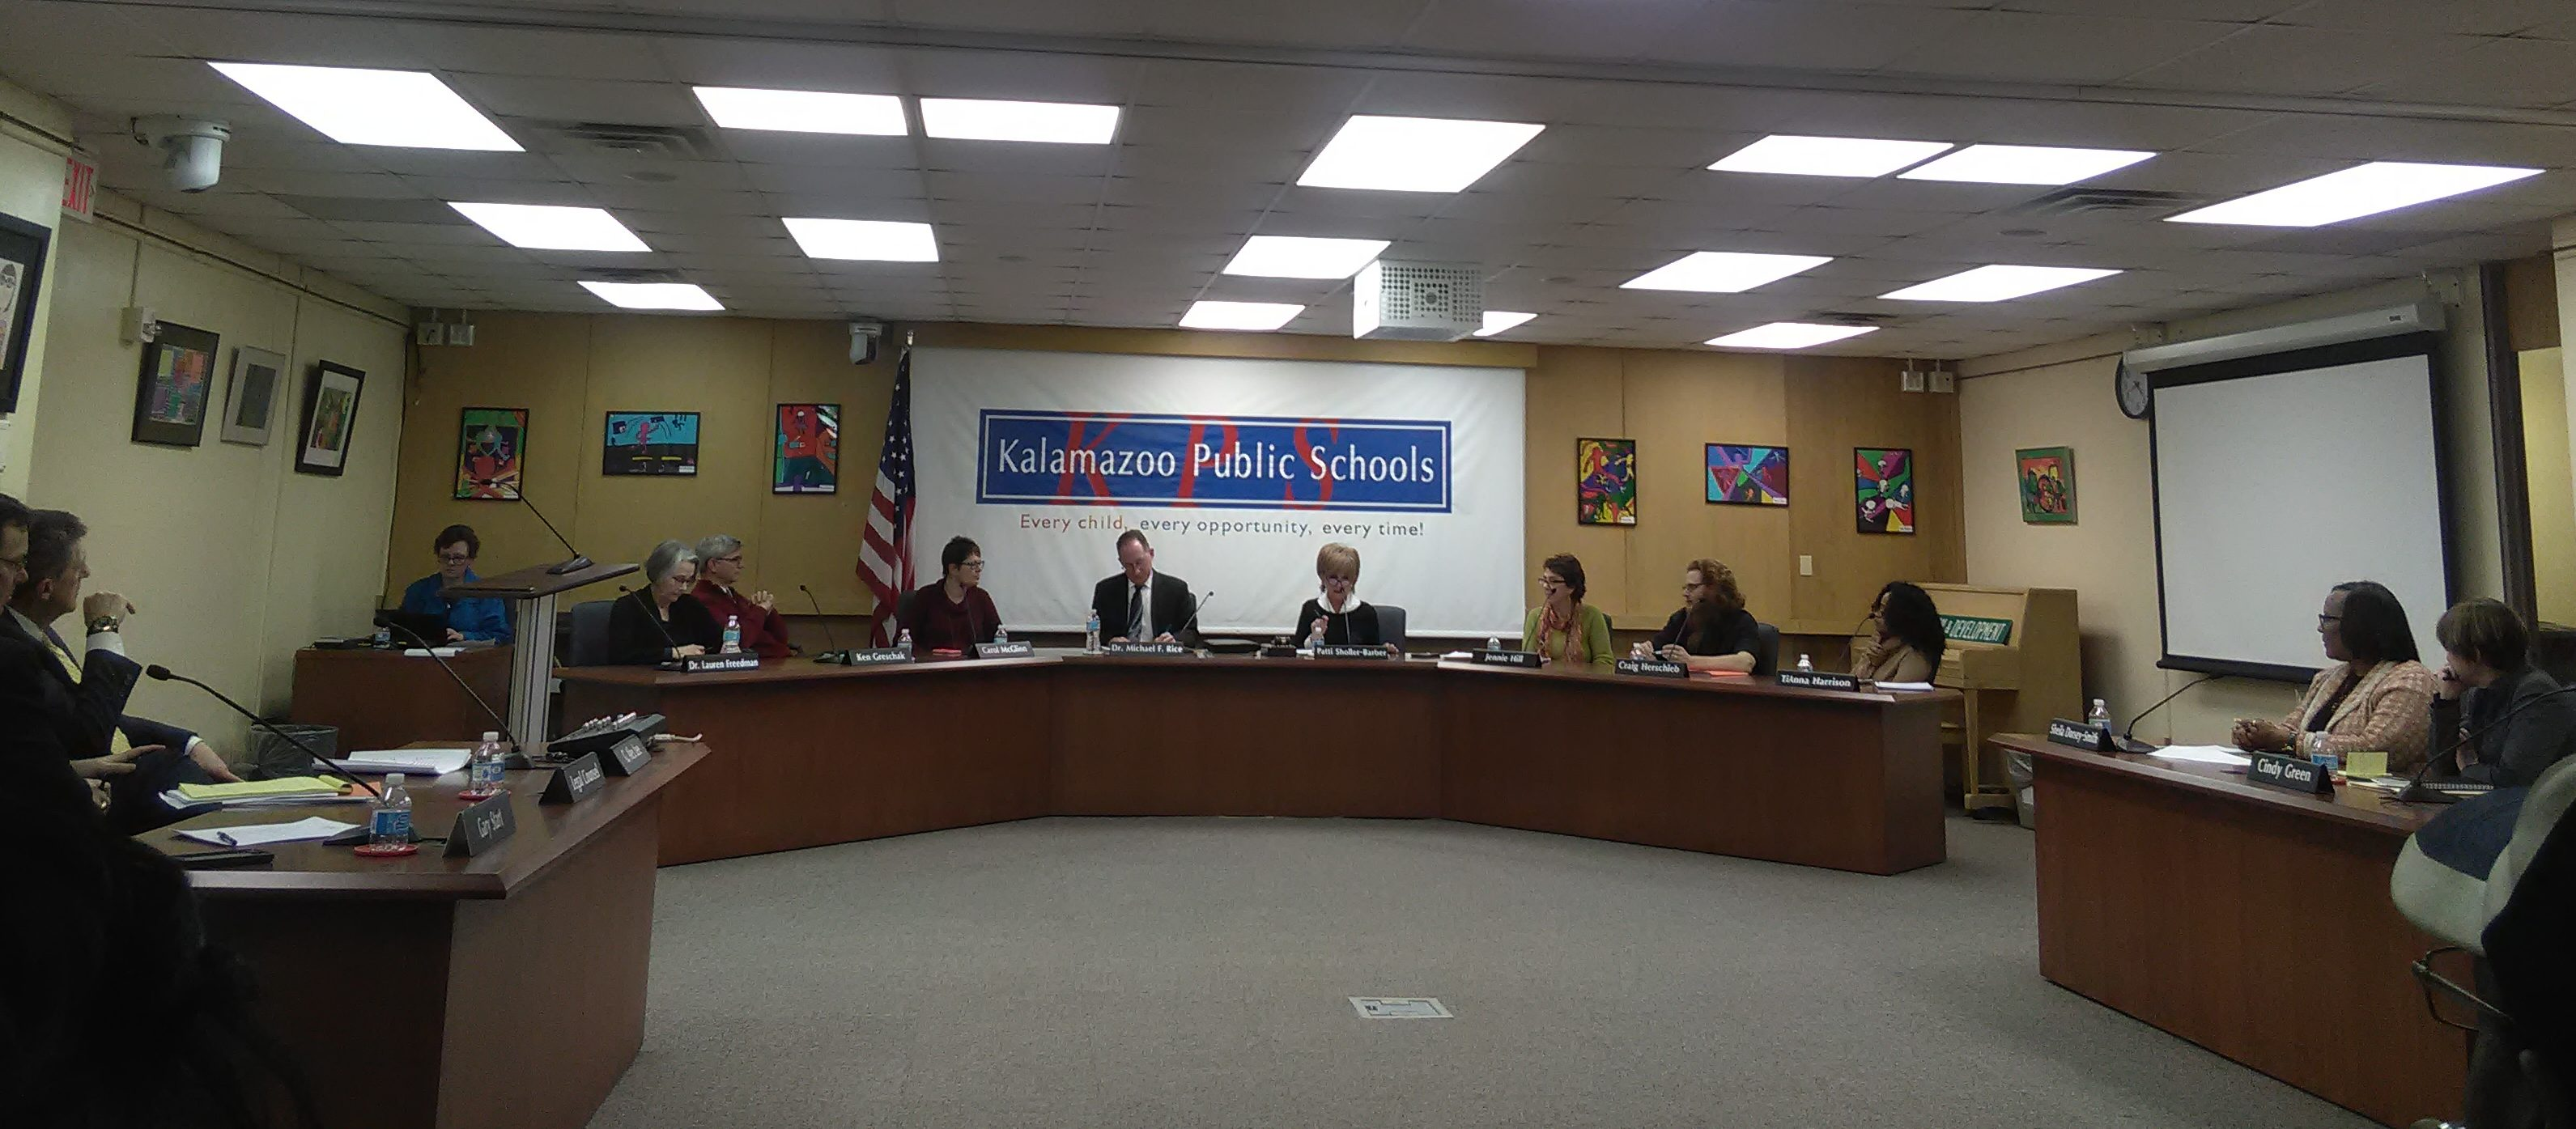 KPS Parents want to S.E.E Change in Districts Implementation of Policies